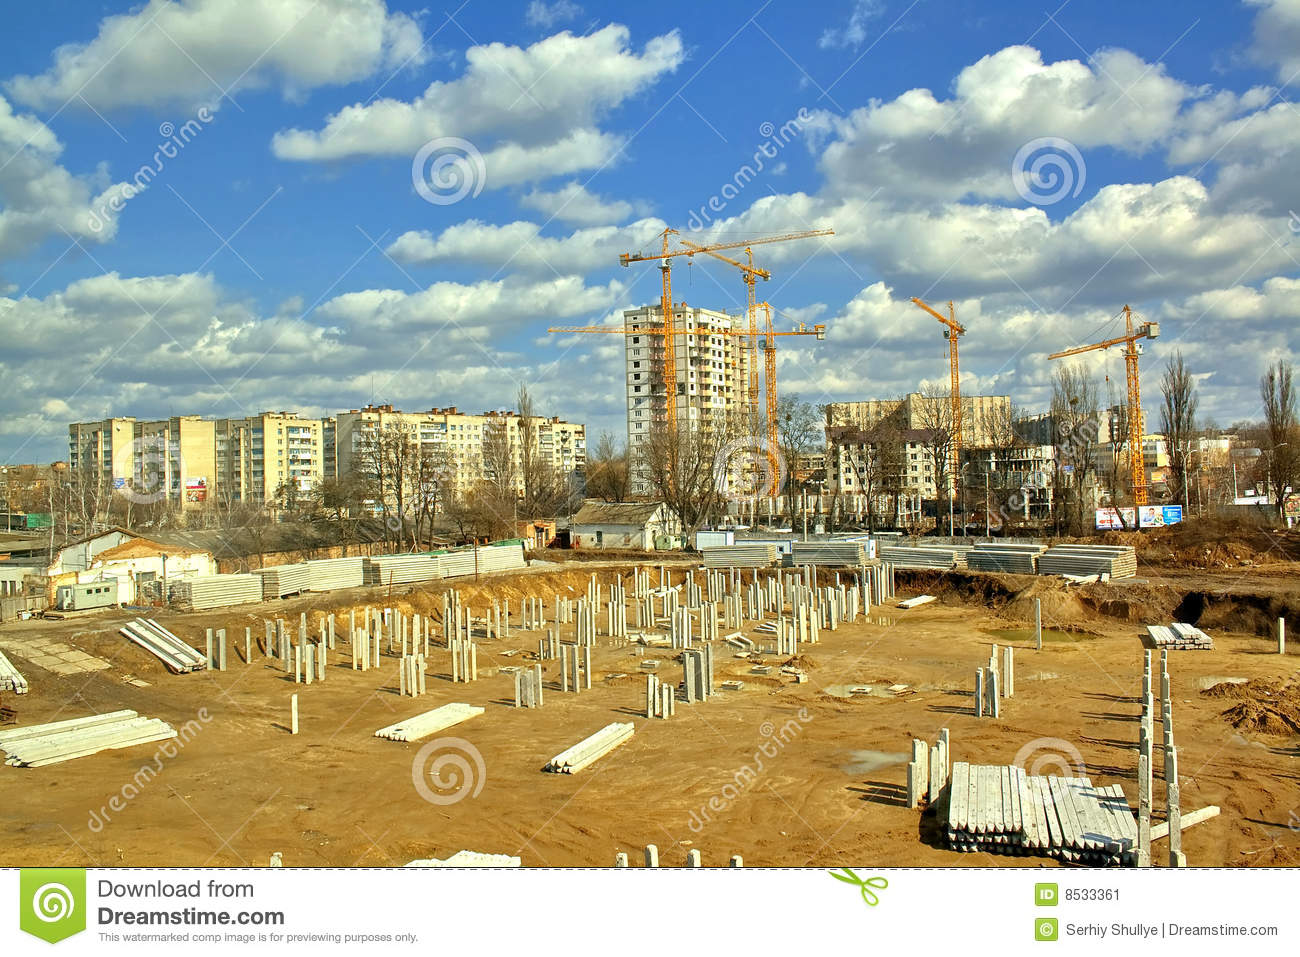 Building area foundation and cranes hdri stock image Builders in my area